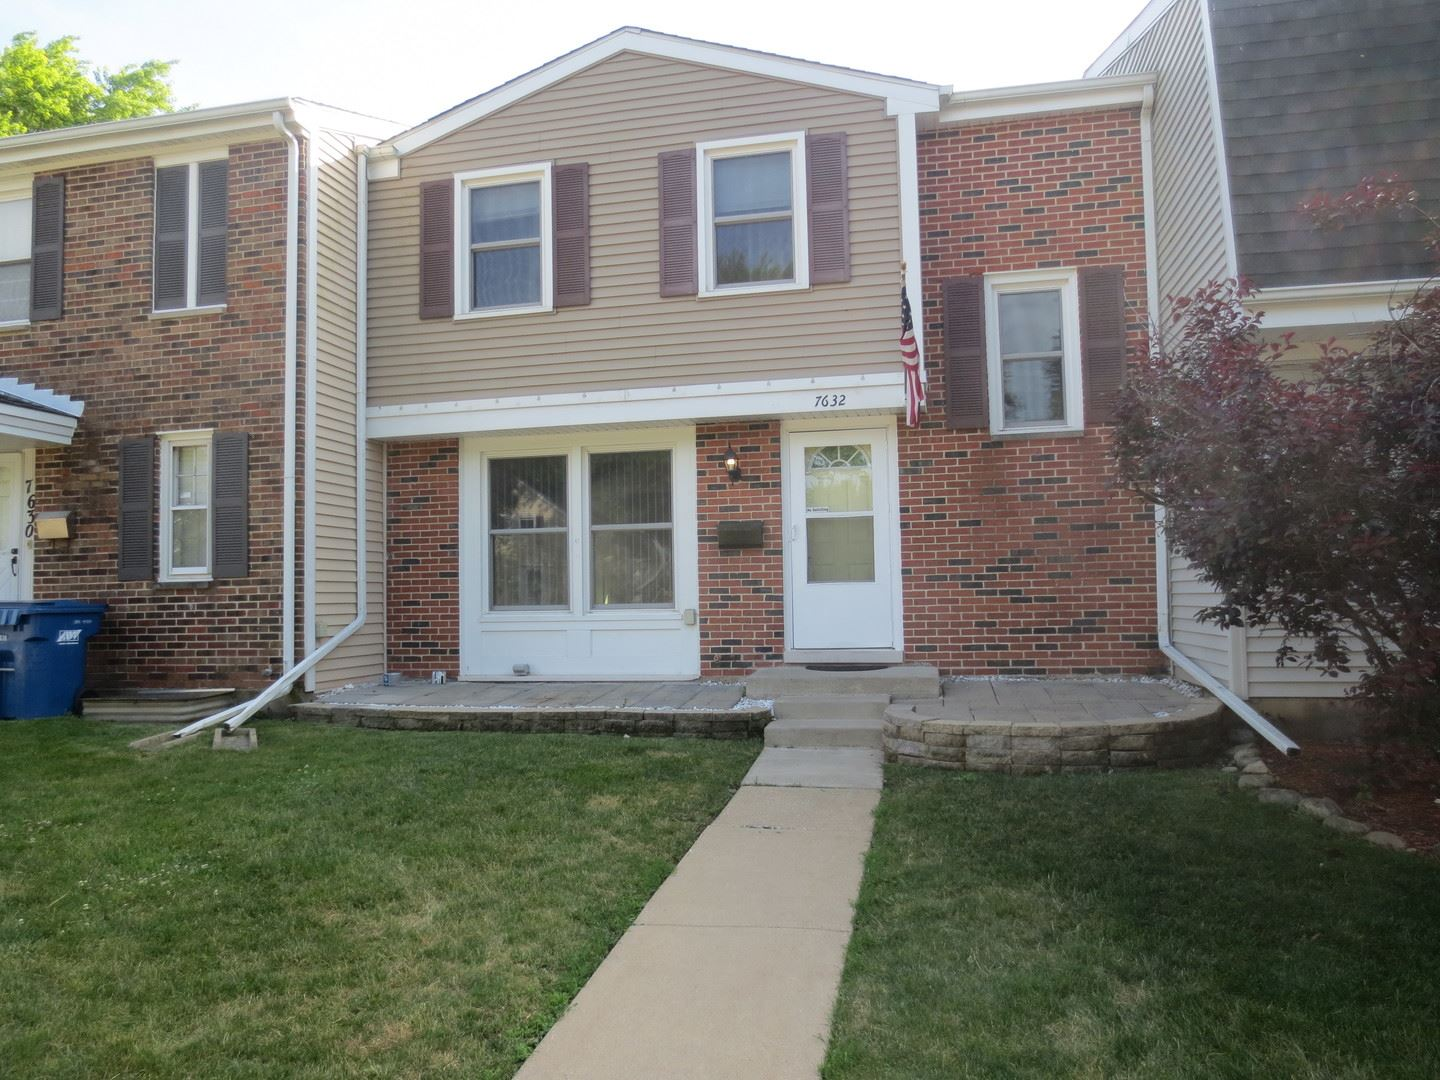 7632 Manchester Manor, Hanover Park, IL 60133 - #: 10767045